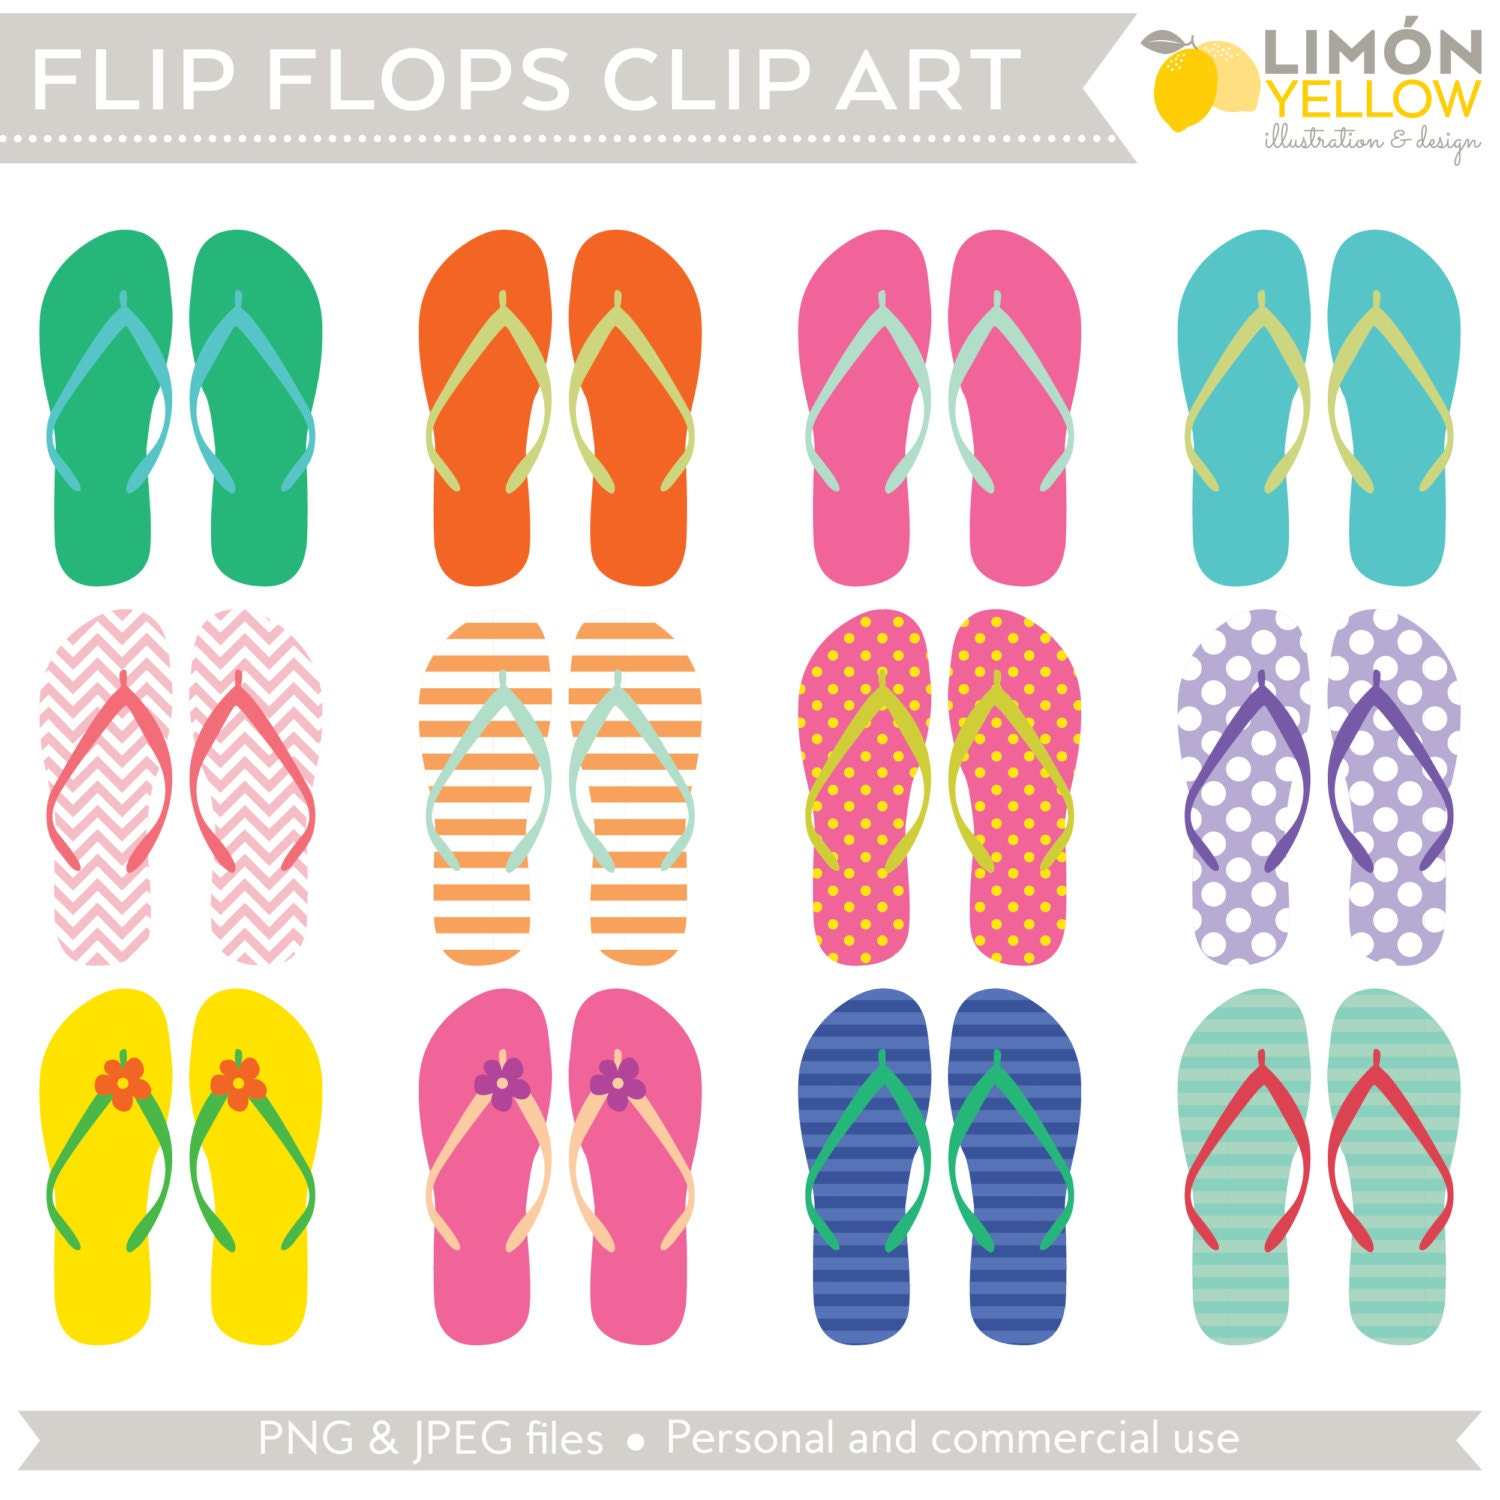 a29fdb078c54c Flip Flop Clip Art Royalty Free Sandals Summer Beach clipart